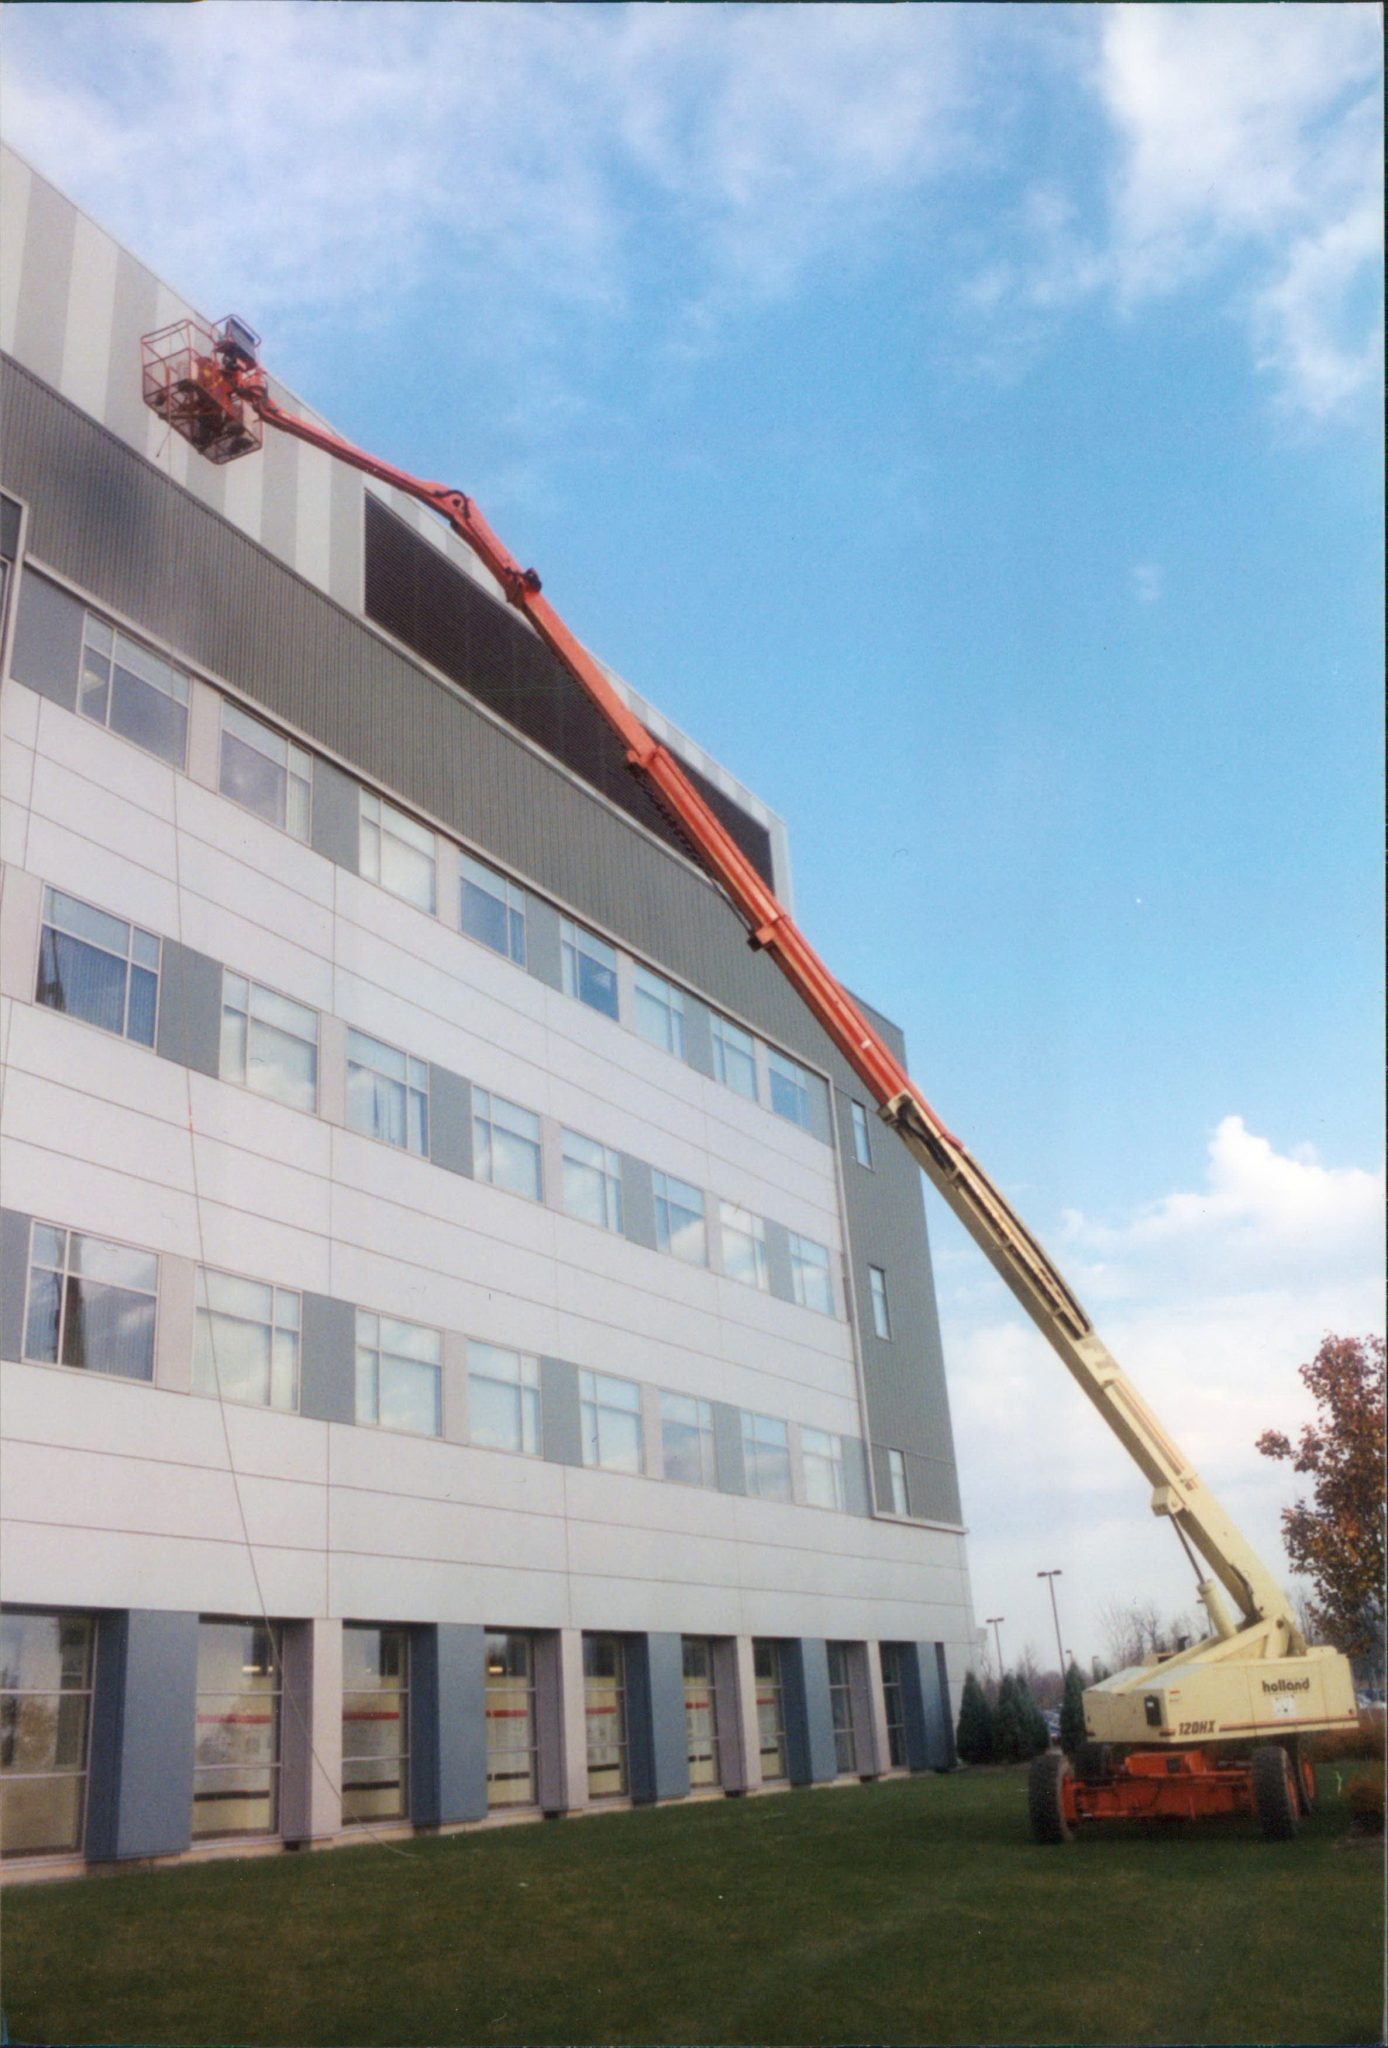 Cleaning aluminum siding on building using 120 foot man lift